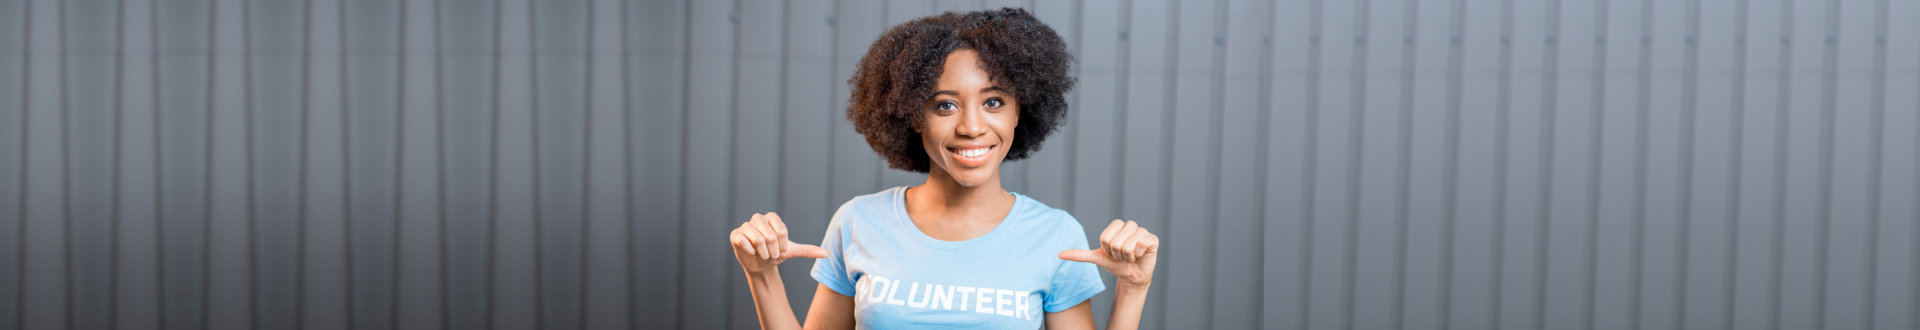 woman volunteering herself campaign program